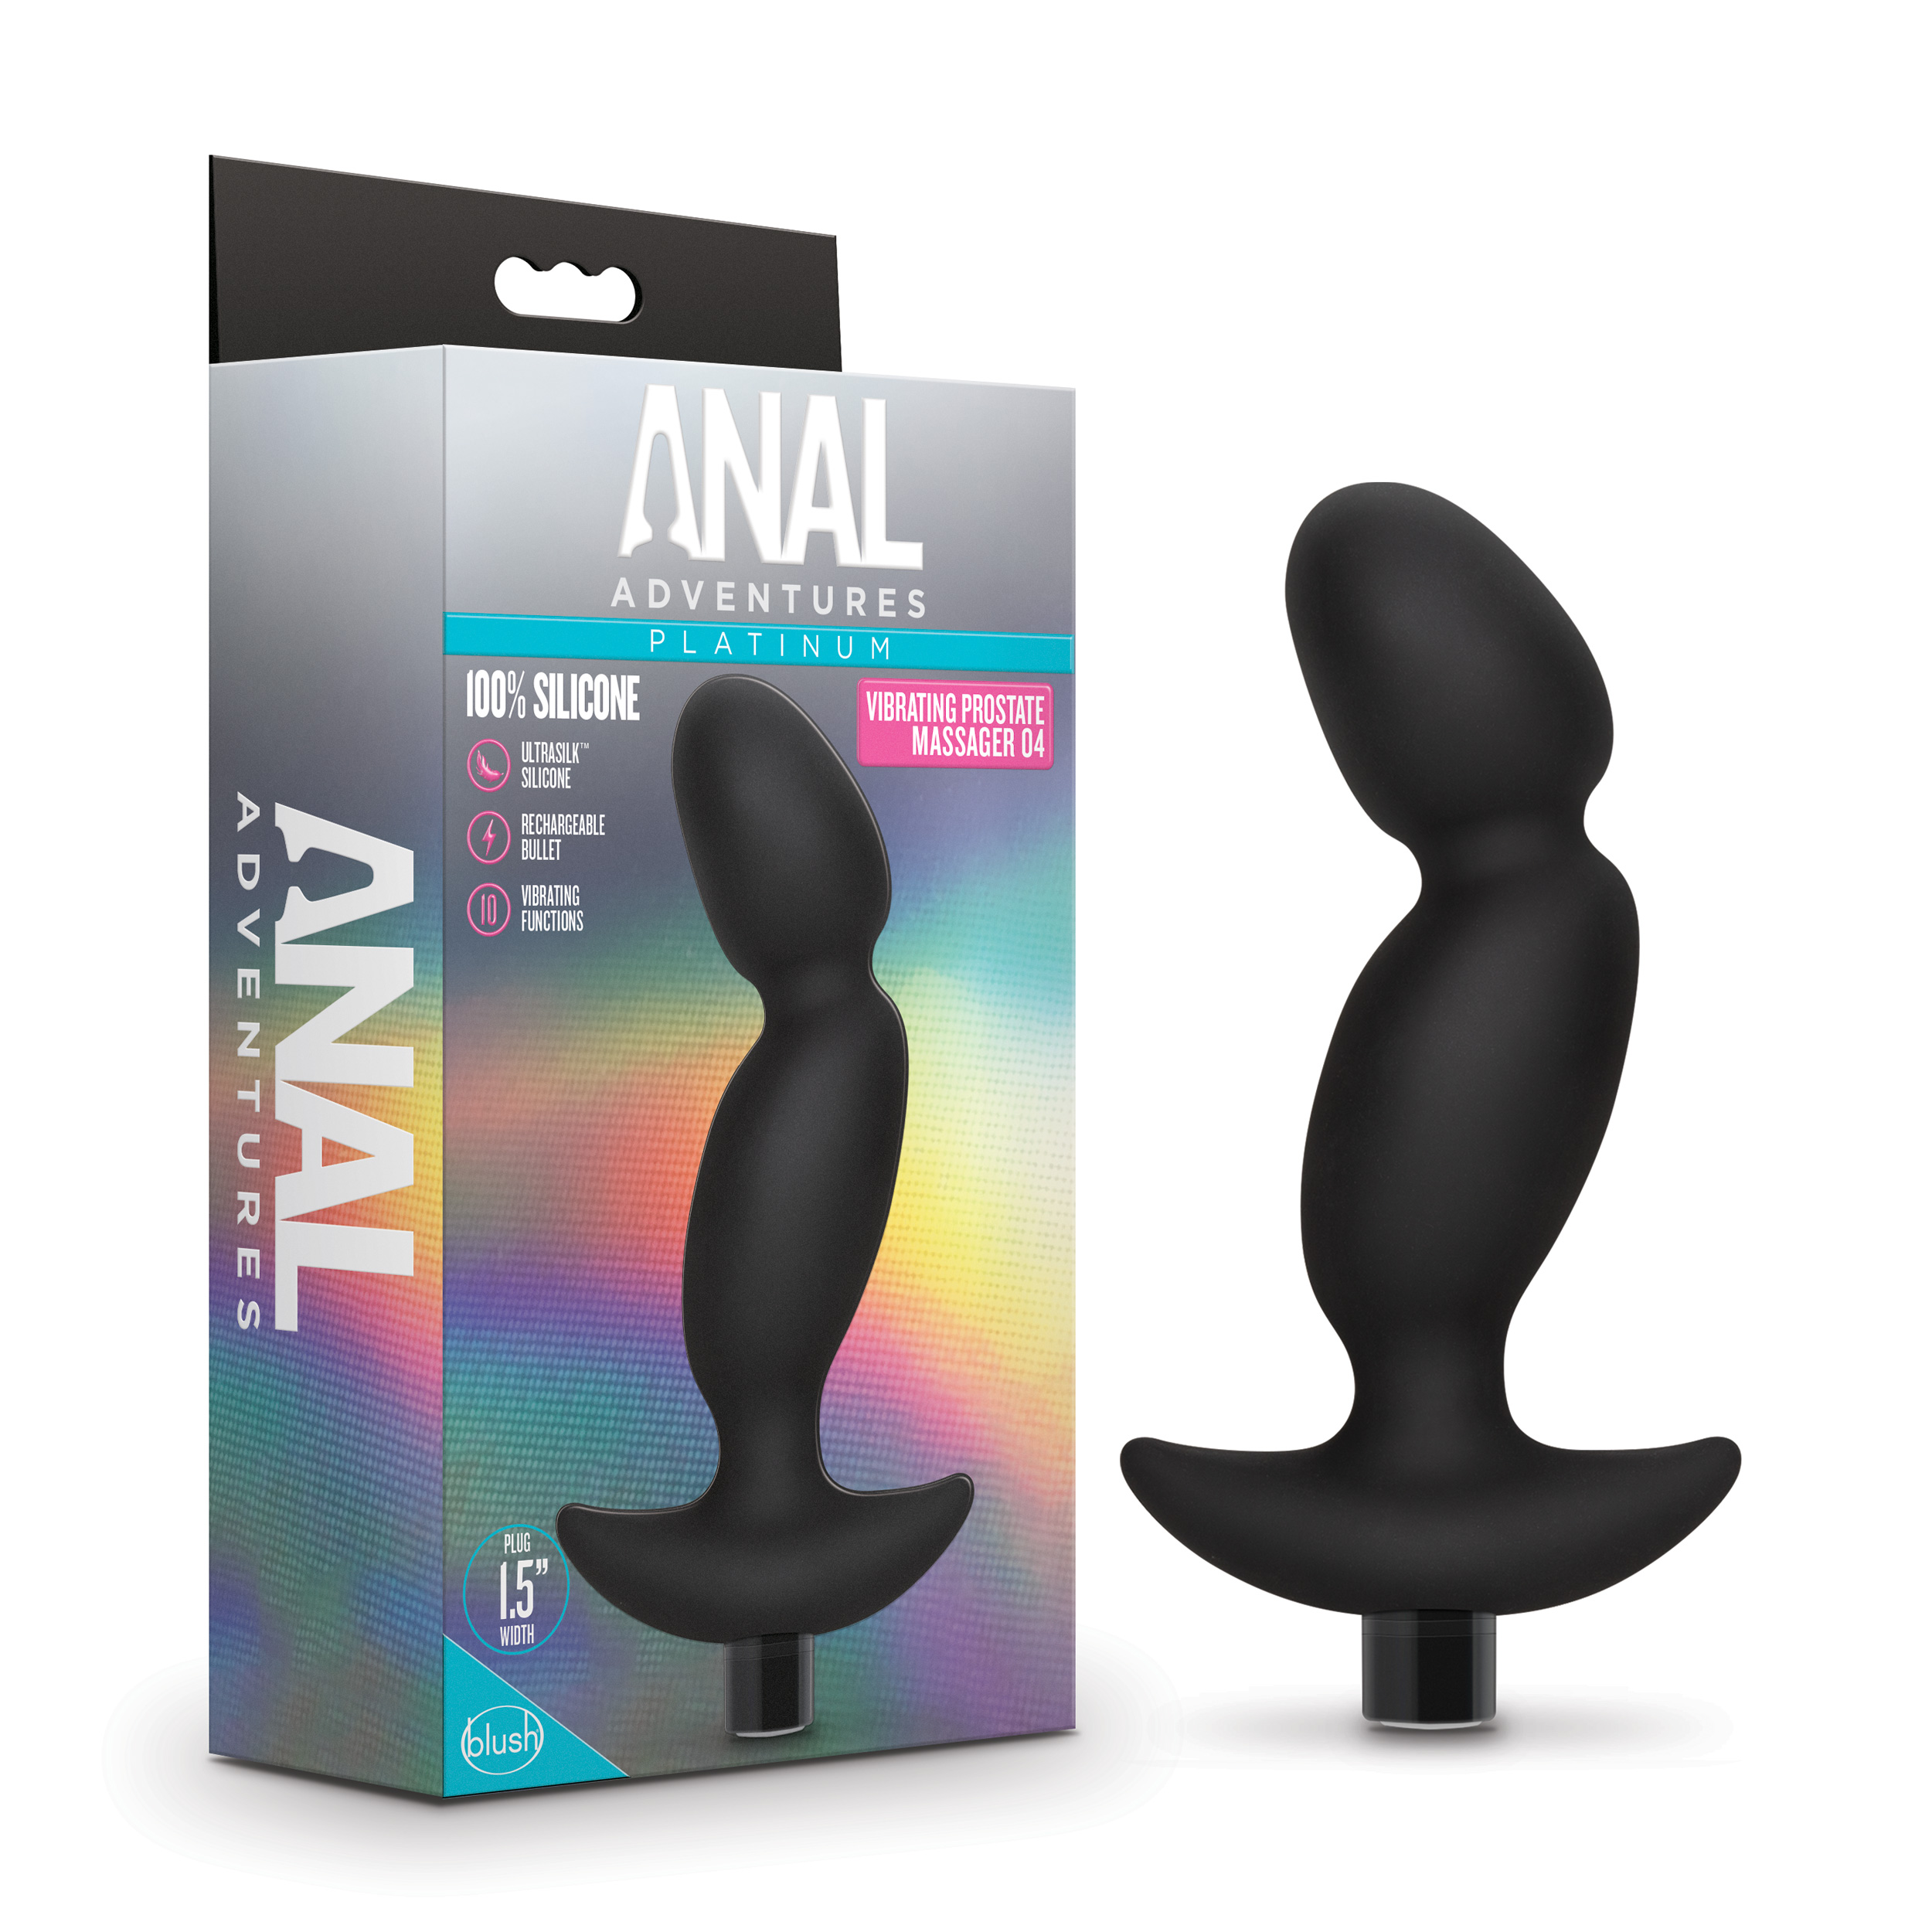 Anal Adventures Platinum - Silicone Vibrating Prostate Massager 04 -Black